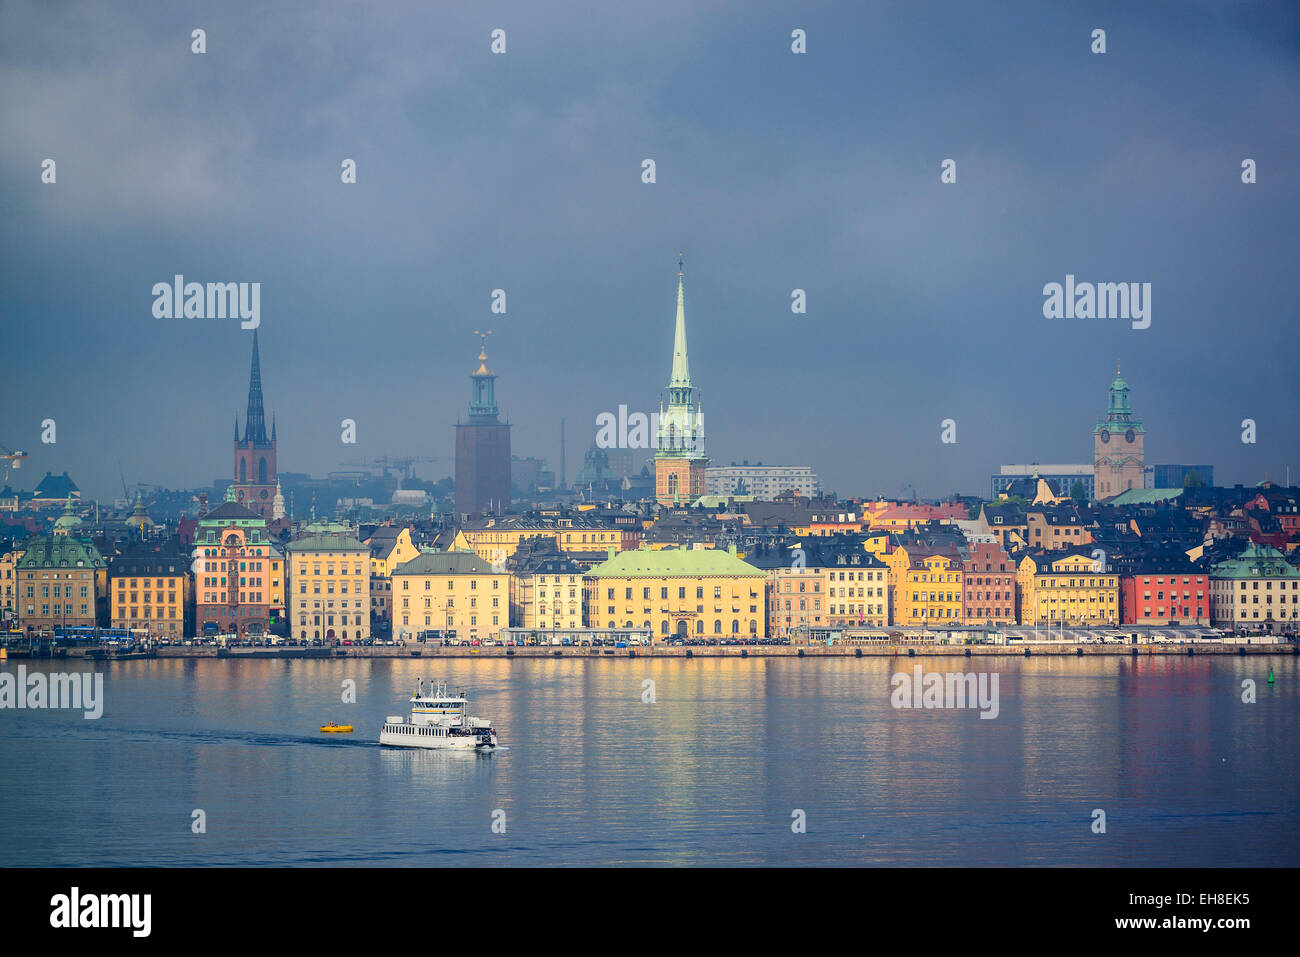 Stockholm, Sweden city skyline. - Stock Image